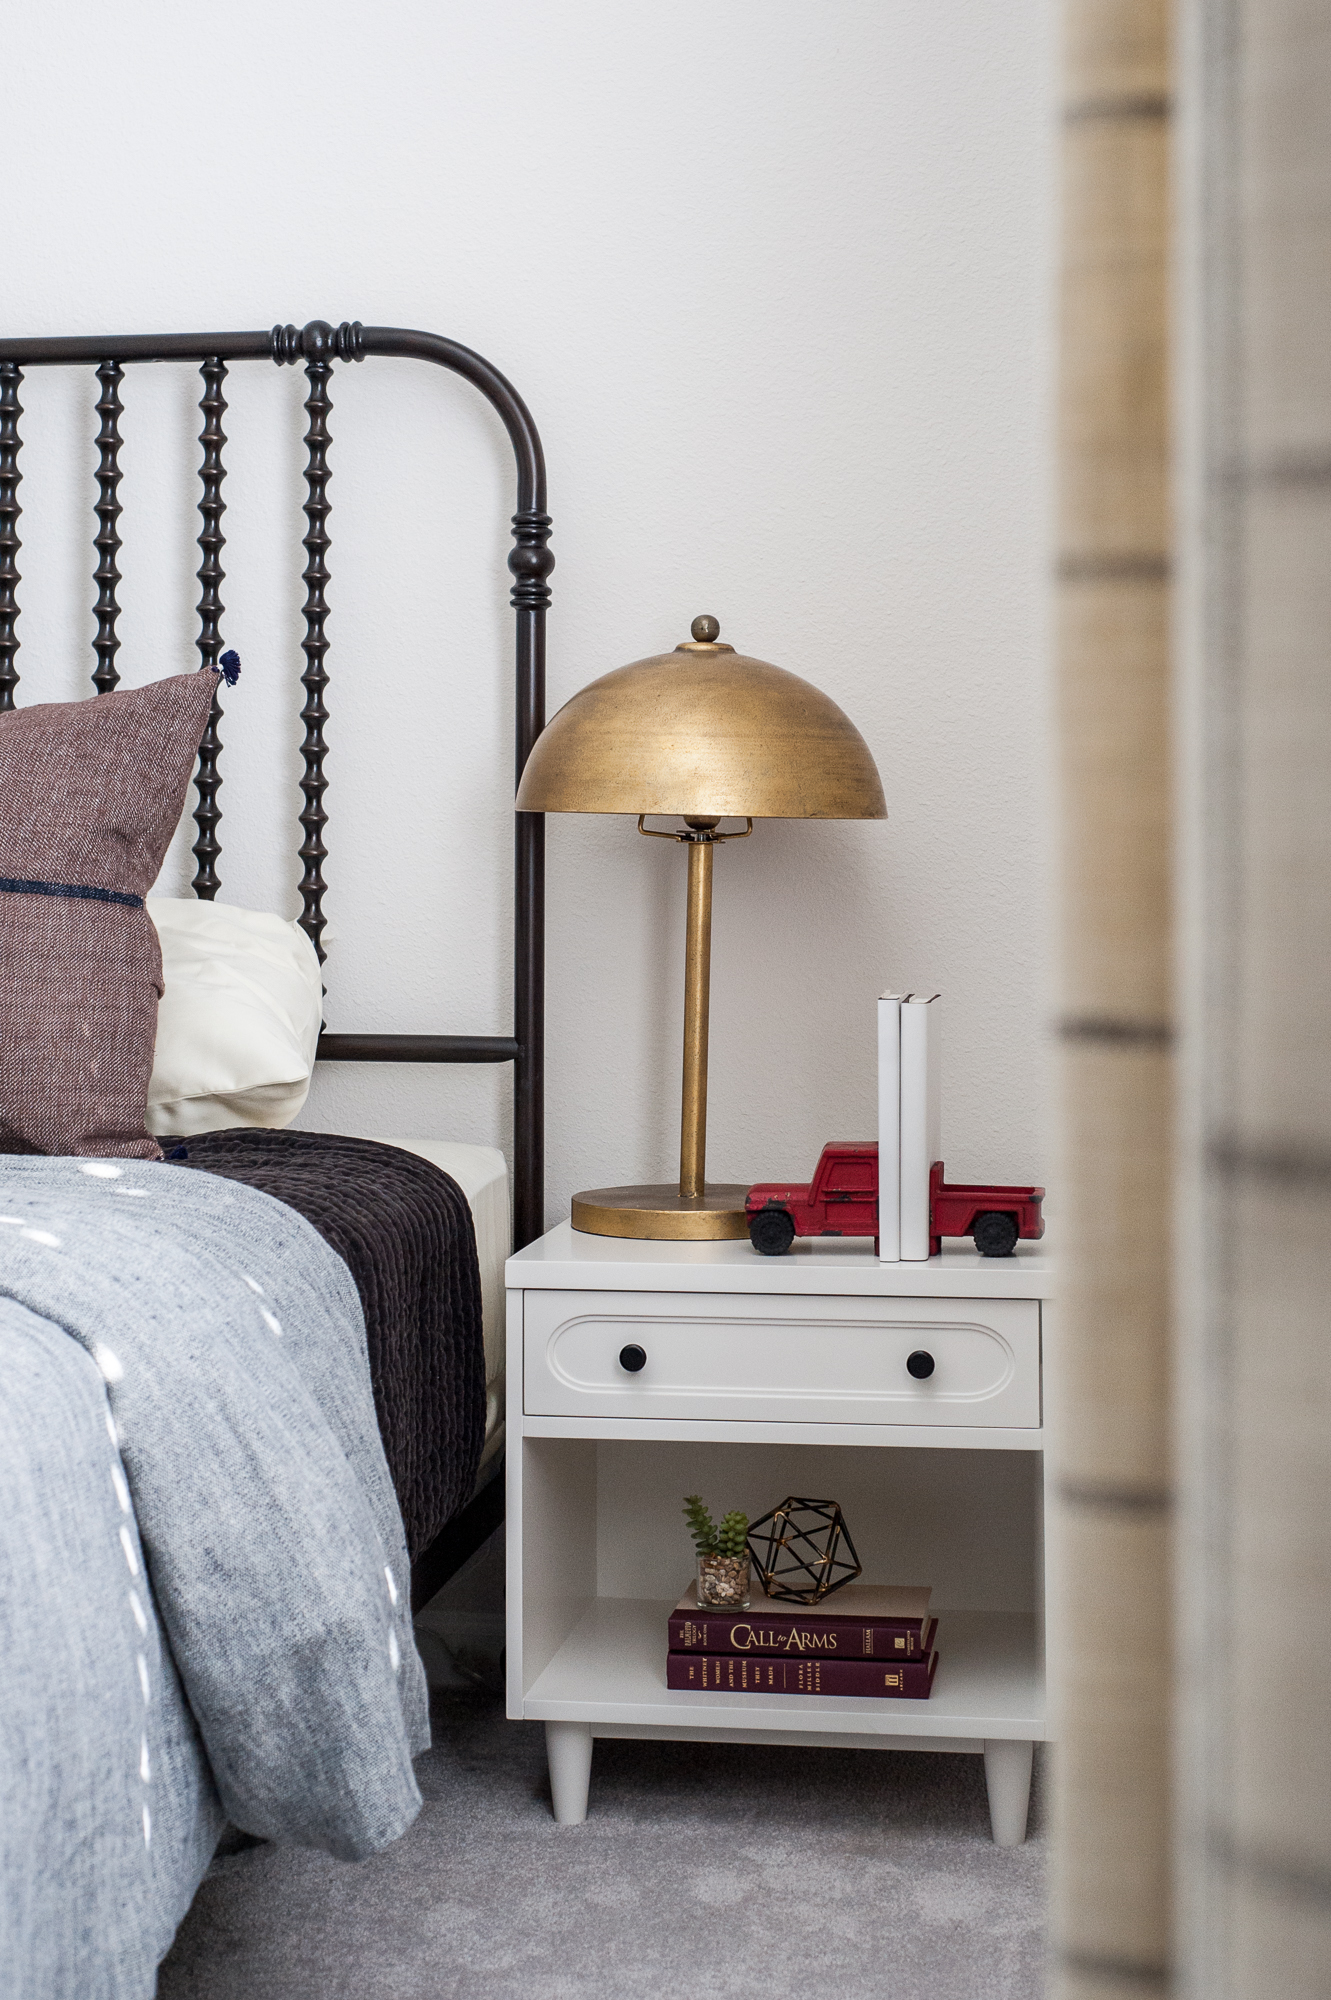 Micamy_Interior Designer_Design_Interior_Model_Merchandising_BoysBedroom_Boys_Camping_McGee&Co_PBTeen_Antlers_Universal_Furniture_Styling_SpindleBed_Rustic_Blog.jpg